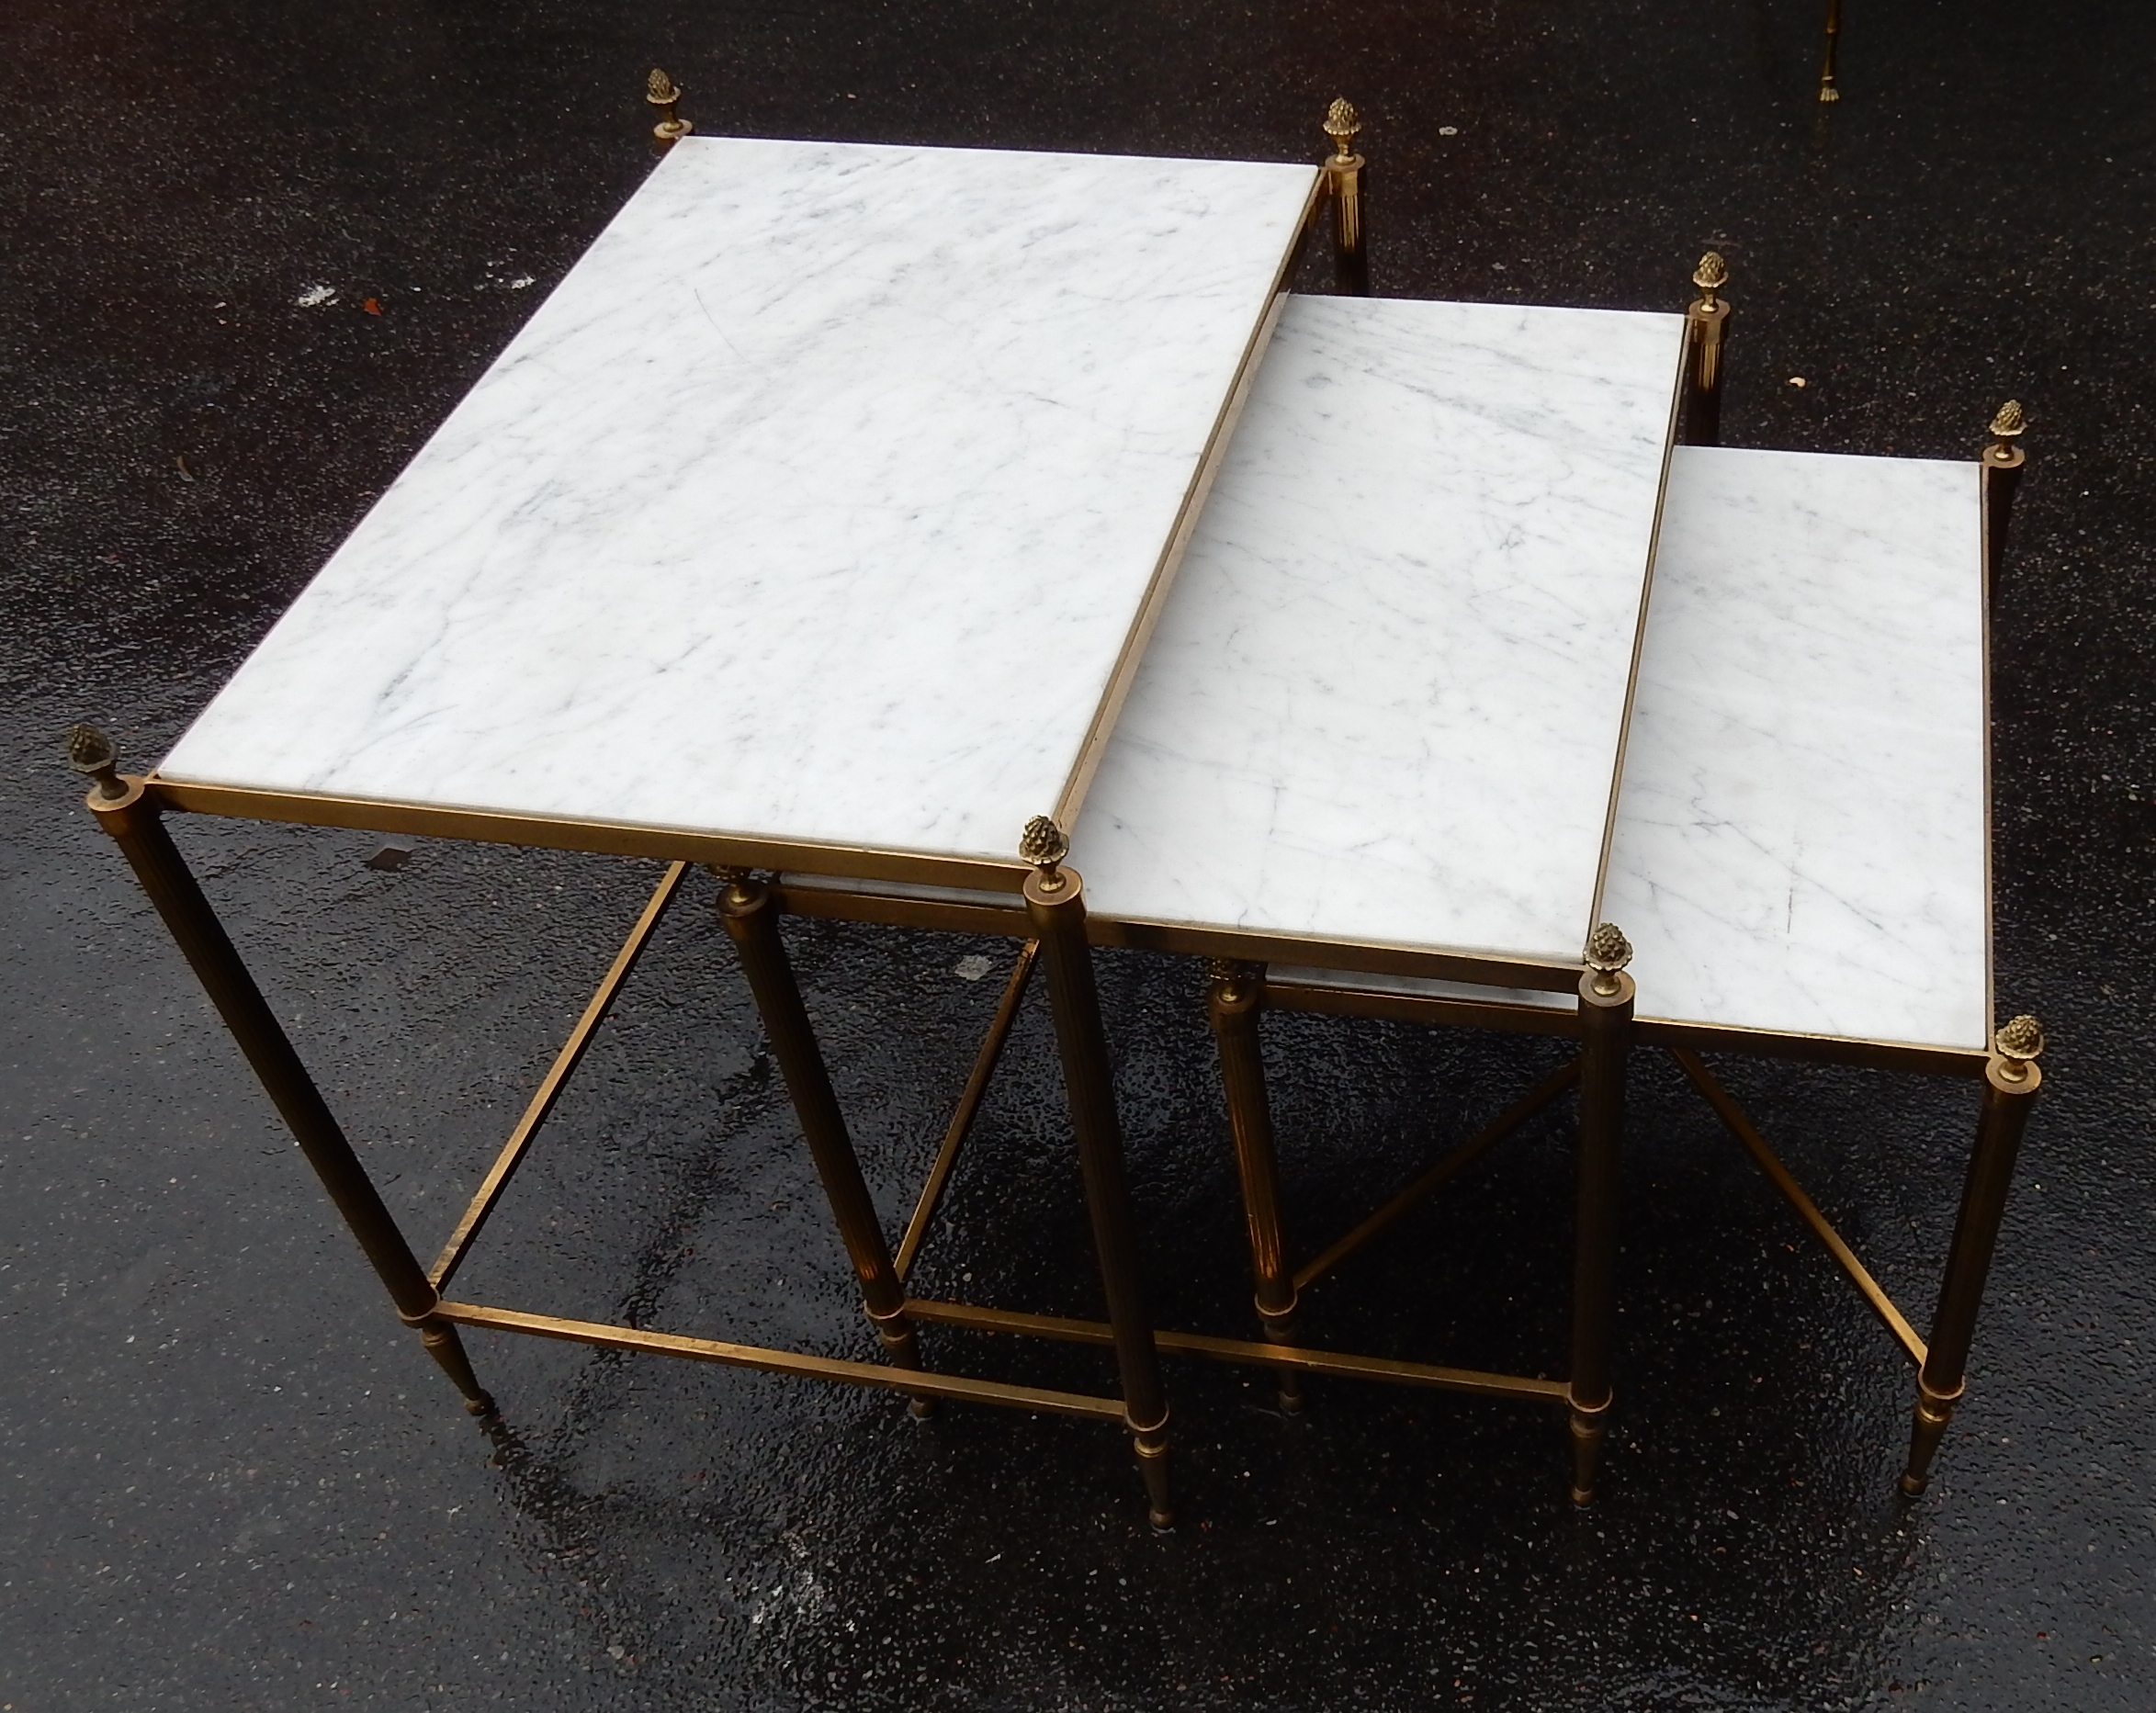 1970 Nested Side Tables Maison Bagues With 3 Marble Trays Fluted Feet And Pine Cone Tops Abcpascal Antiquites